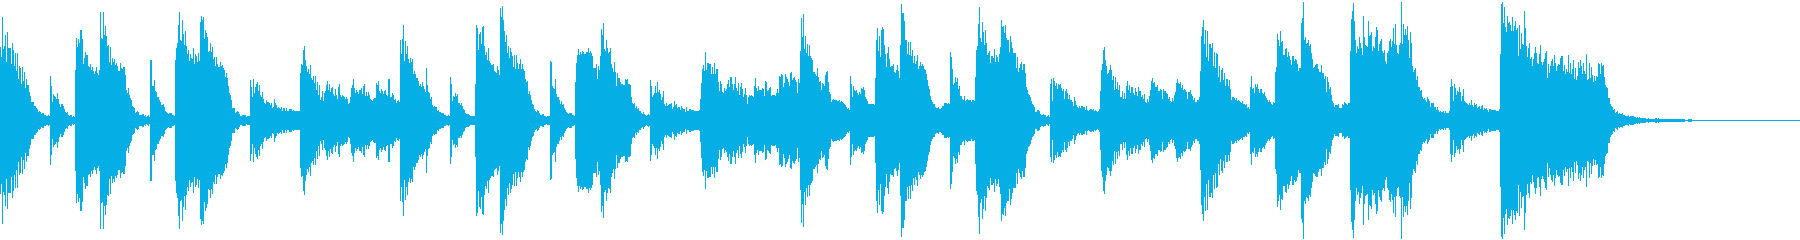 Comical naughty cute fun CM d's reproduced waveform